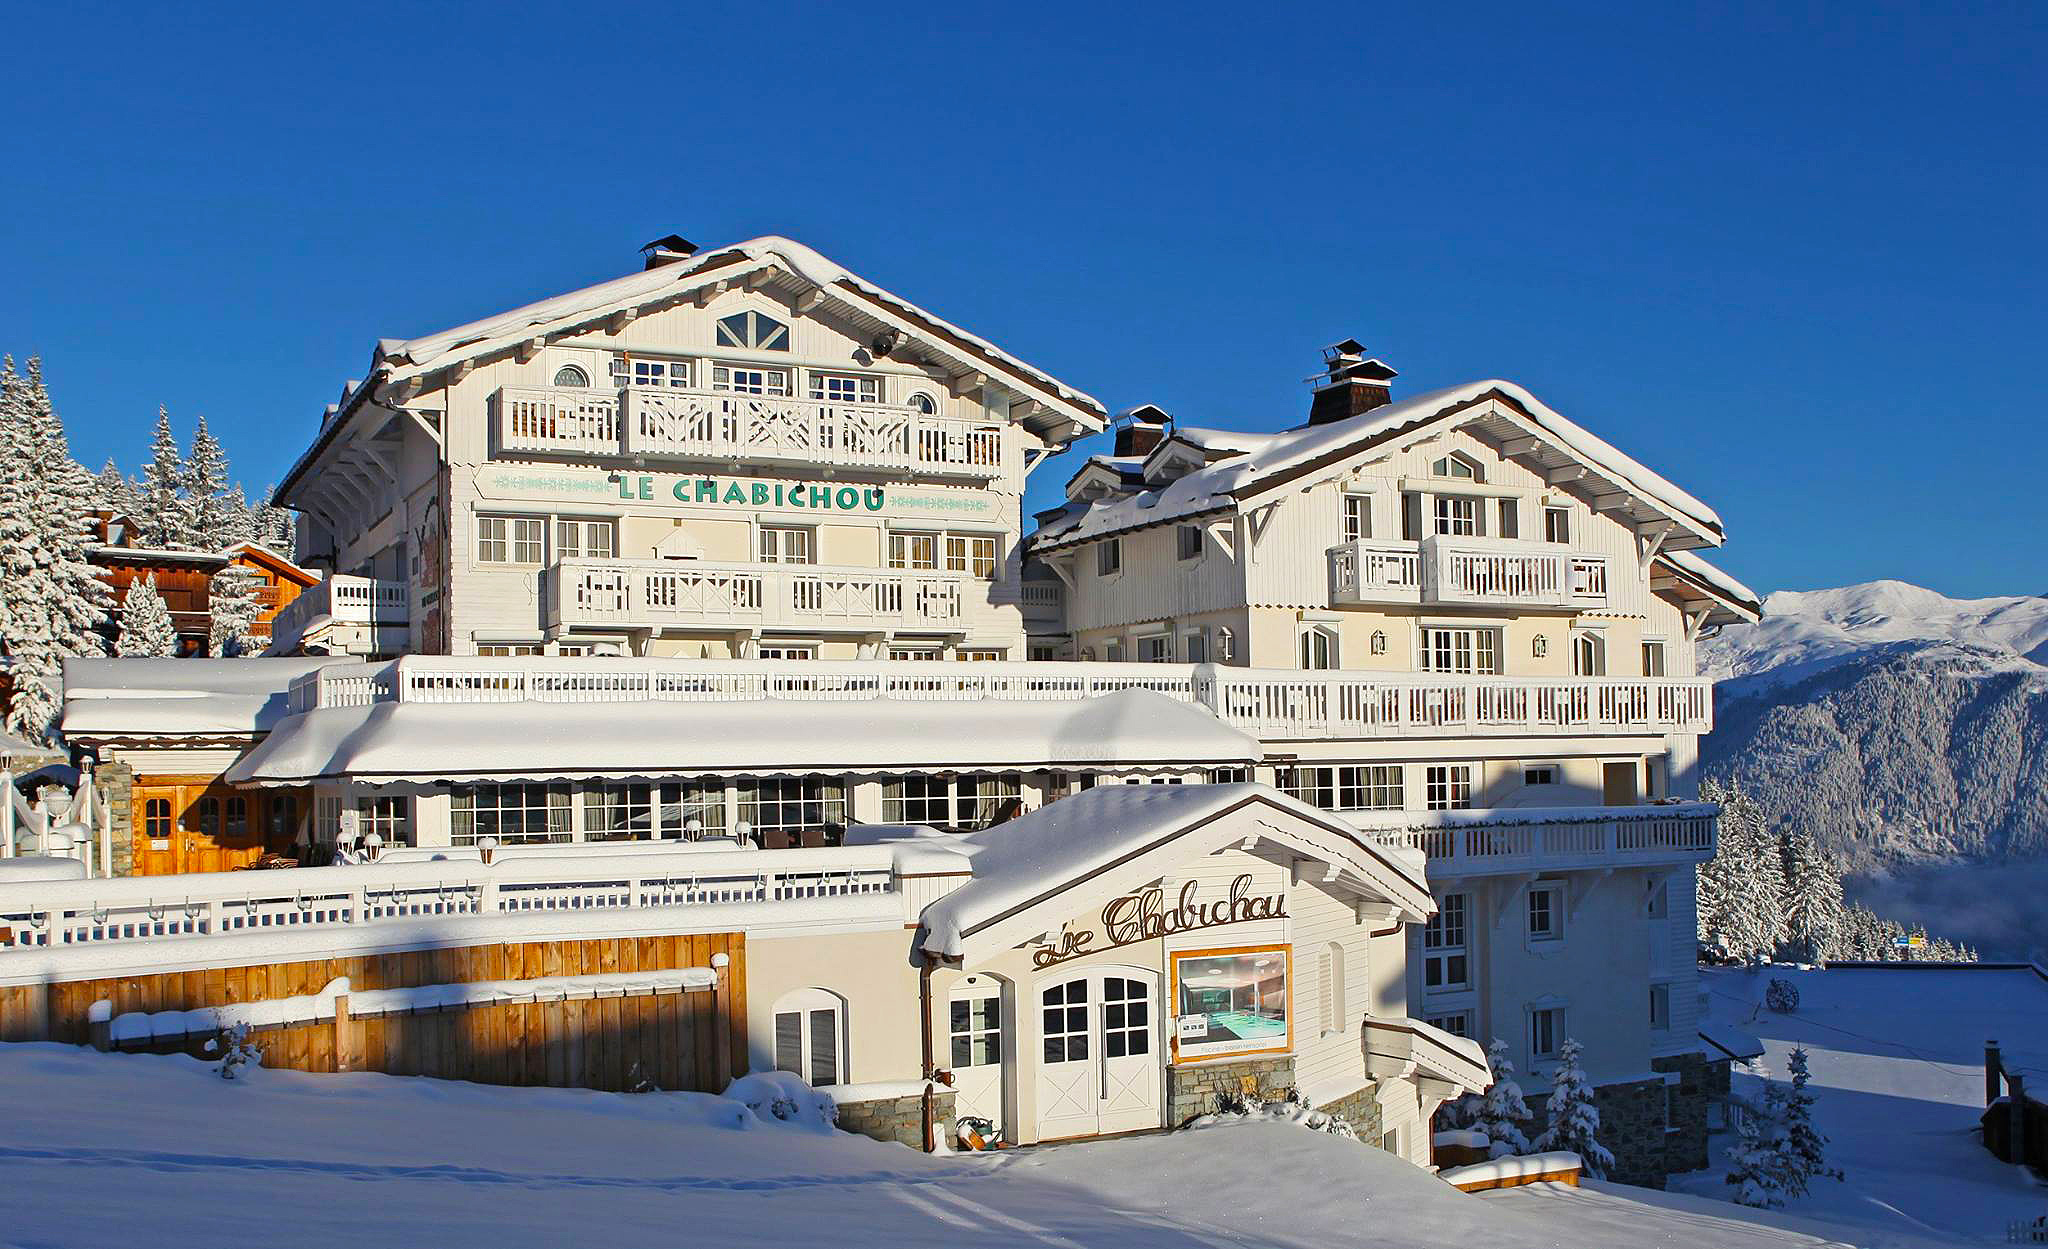 Five-star mountain resort luxury at Le Chabichou Hôtel, Courchevel, France